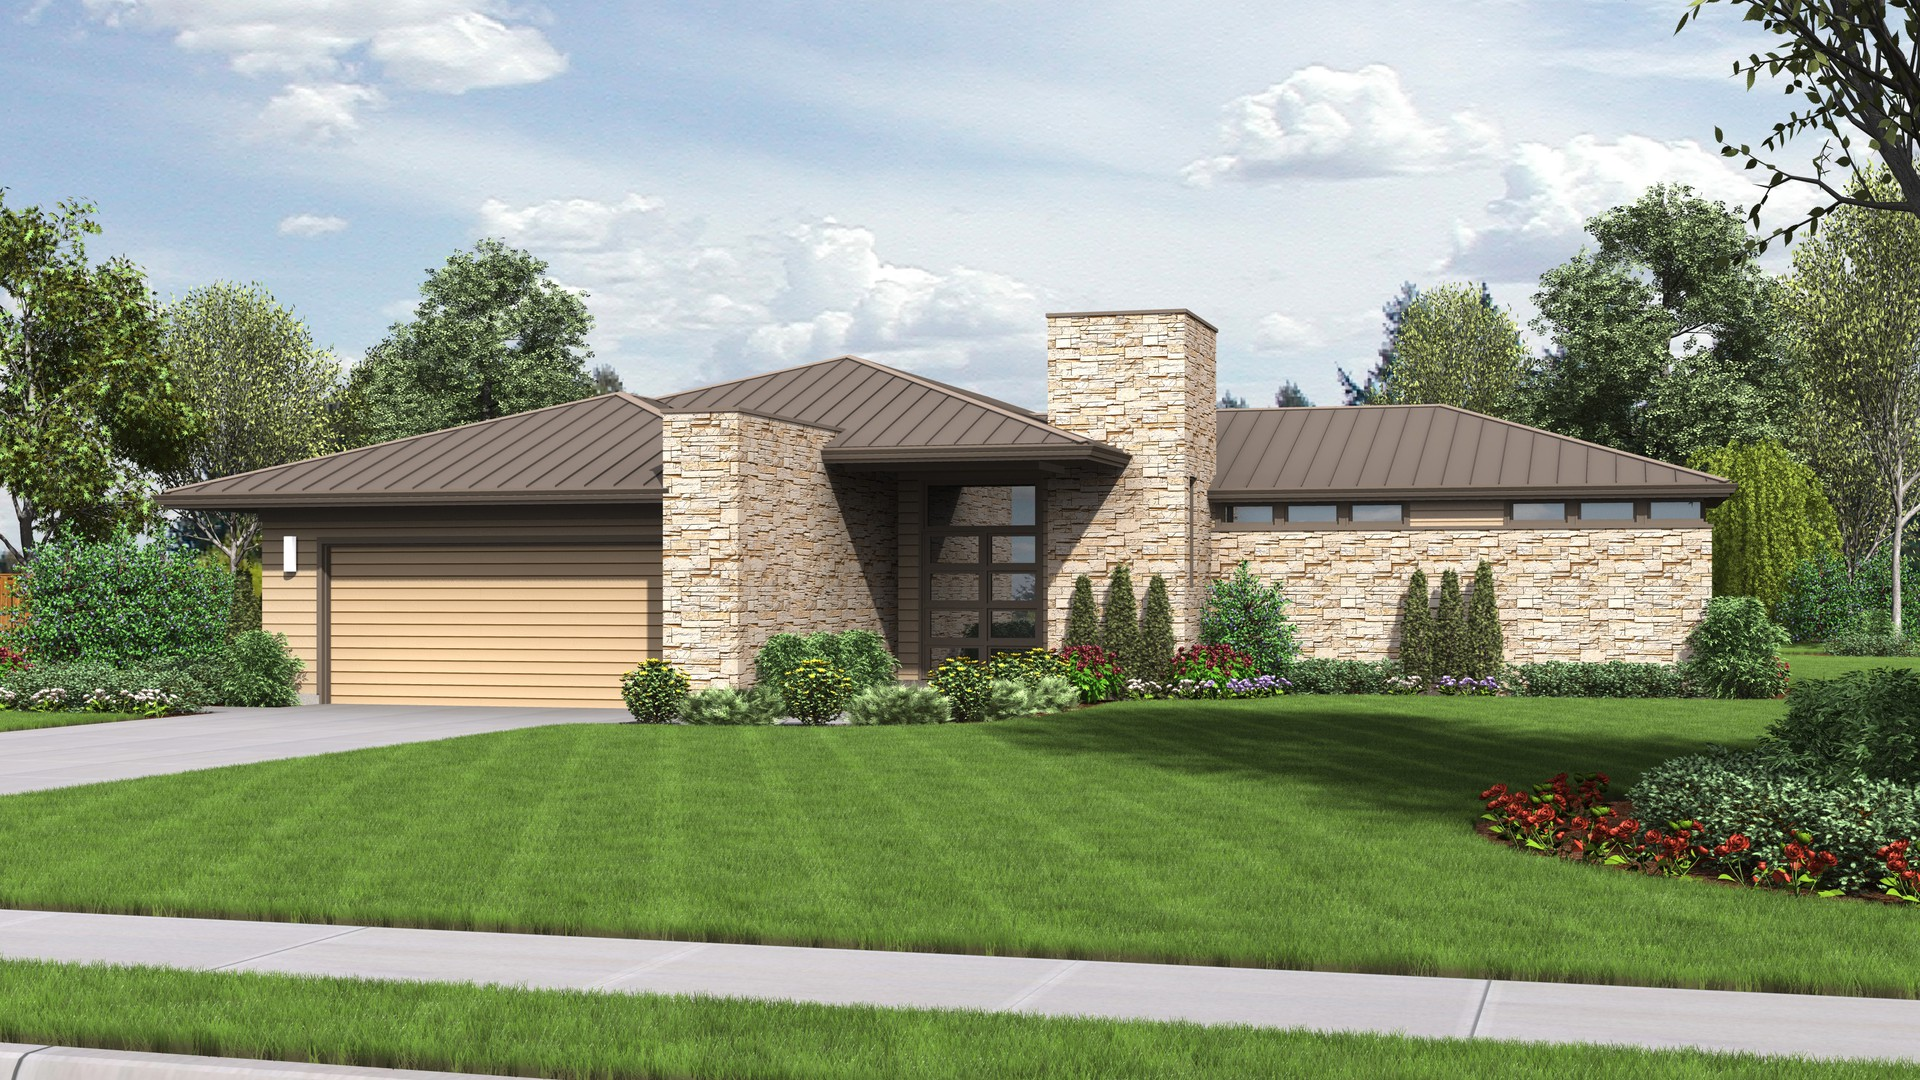 Contemporary house plan 1246 the houston 2159 sqft 3 for Houses in houston with basements